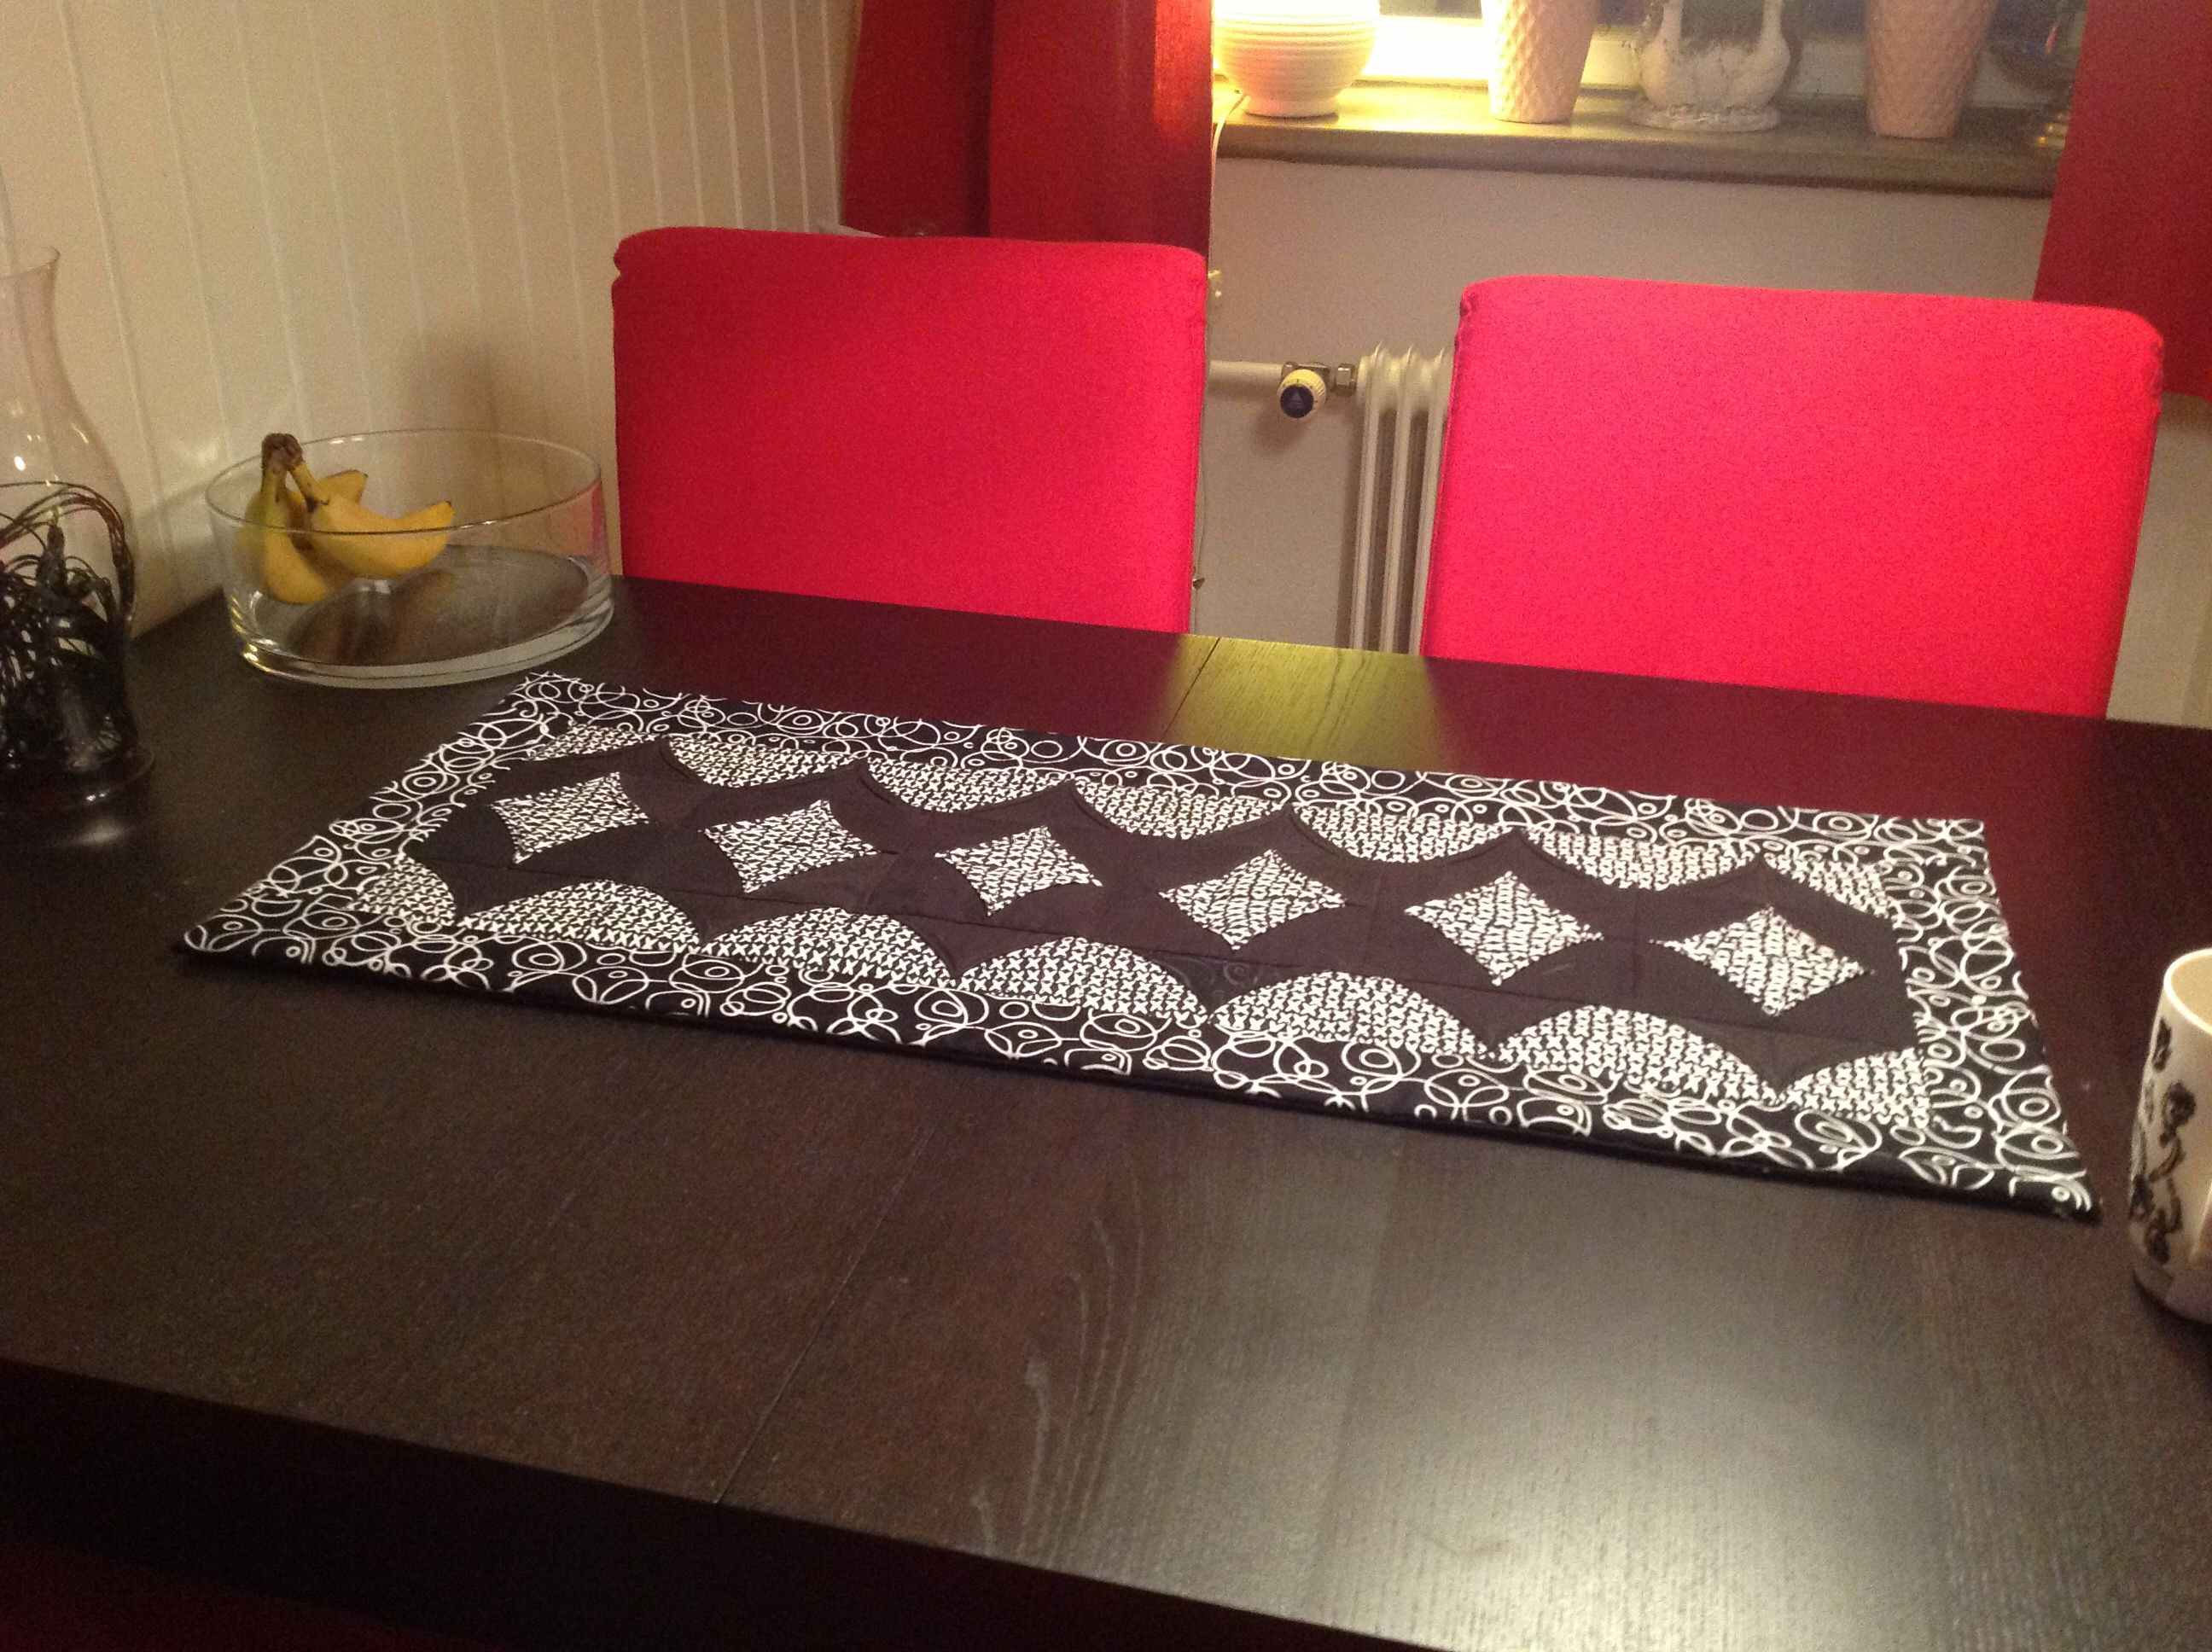 Two Zigzag table runner put together From the book Fiveminutes